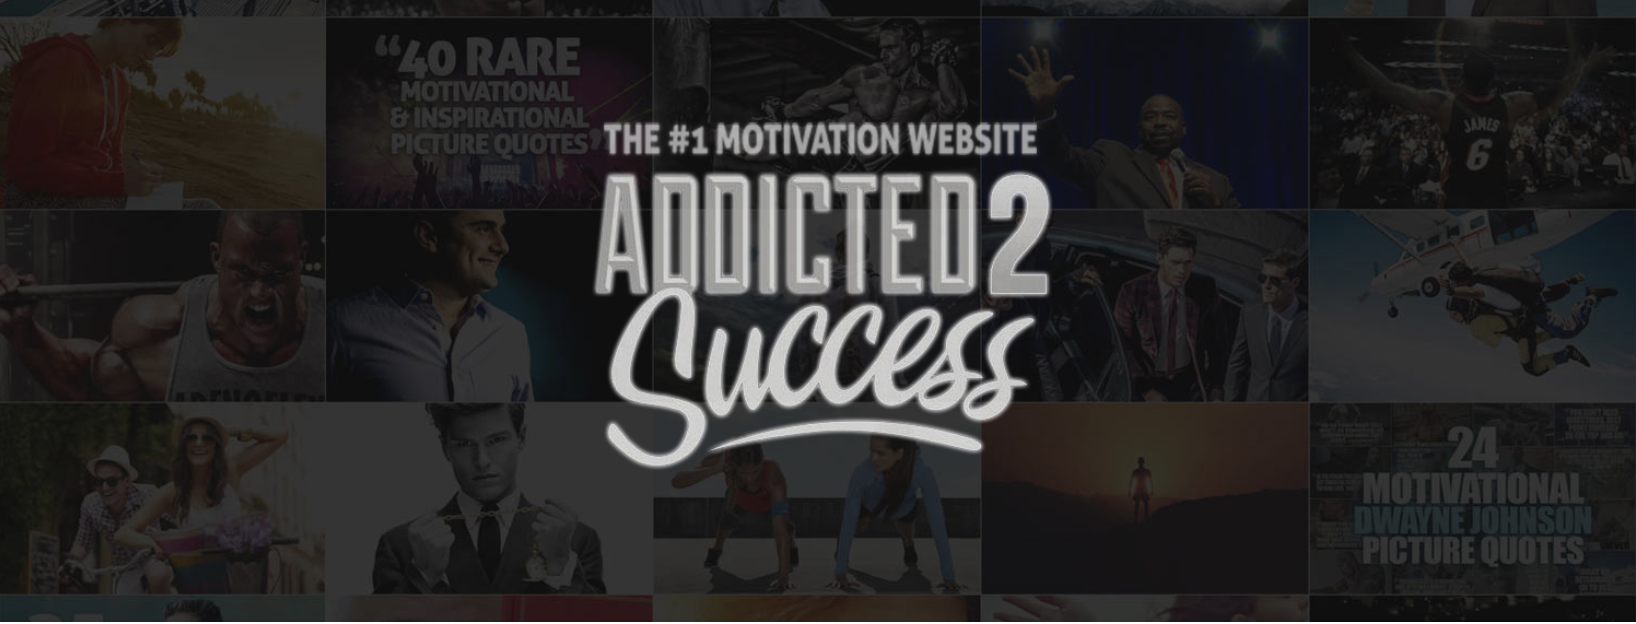 Addicted2Success Facebook Page Image